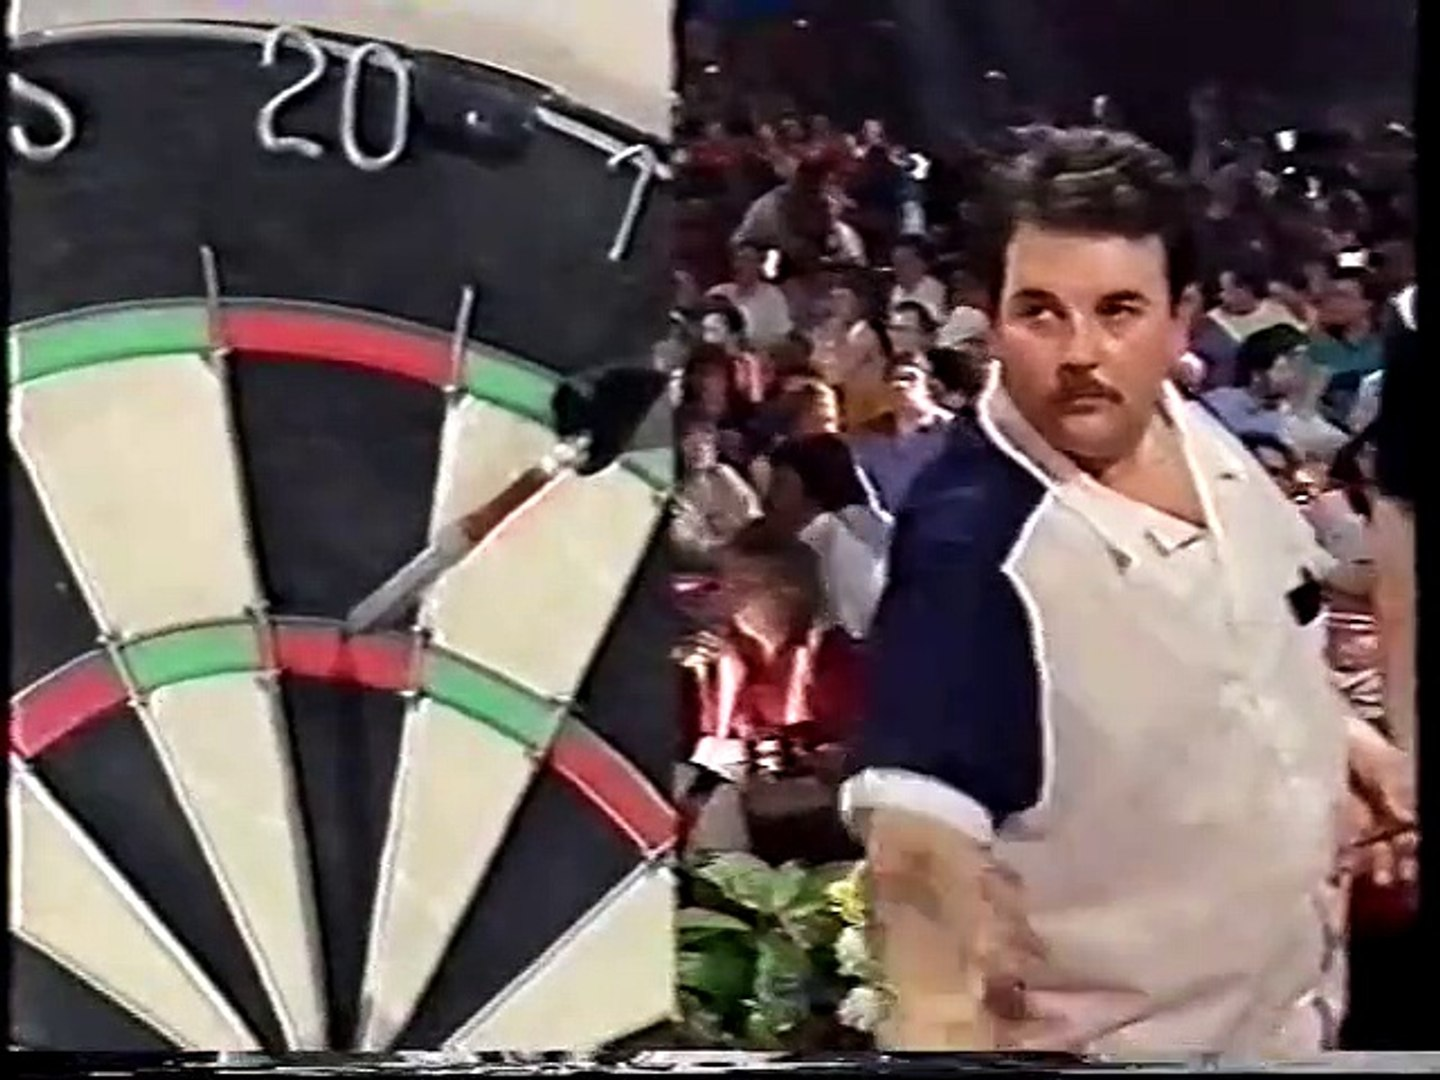 BDO World Darts Championship Final 1992 - Mike Gregory vs Phil Taylor  3of4